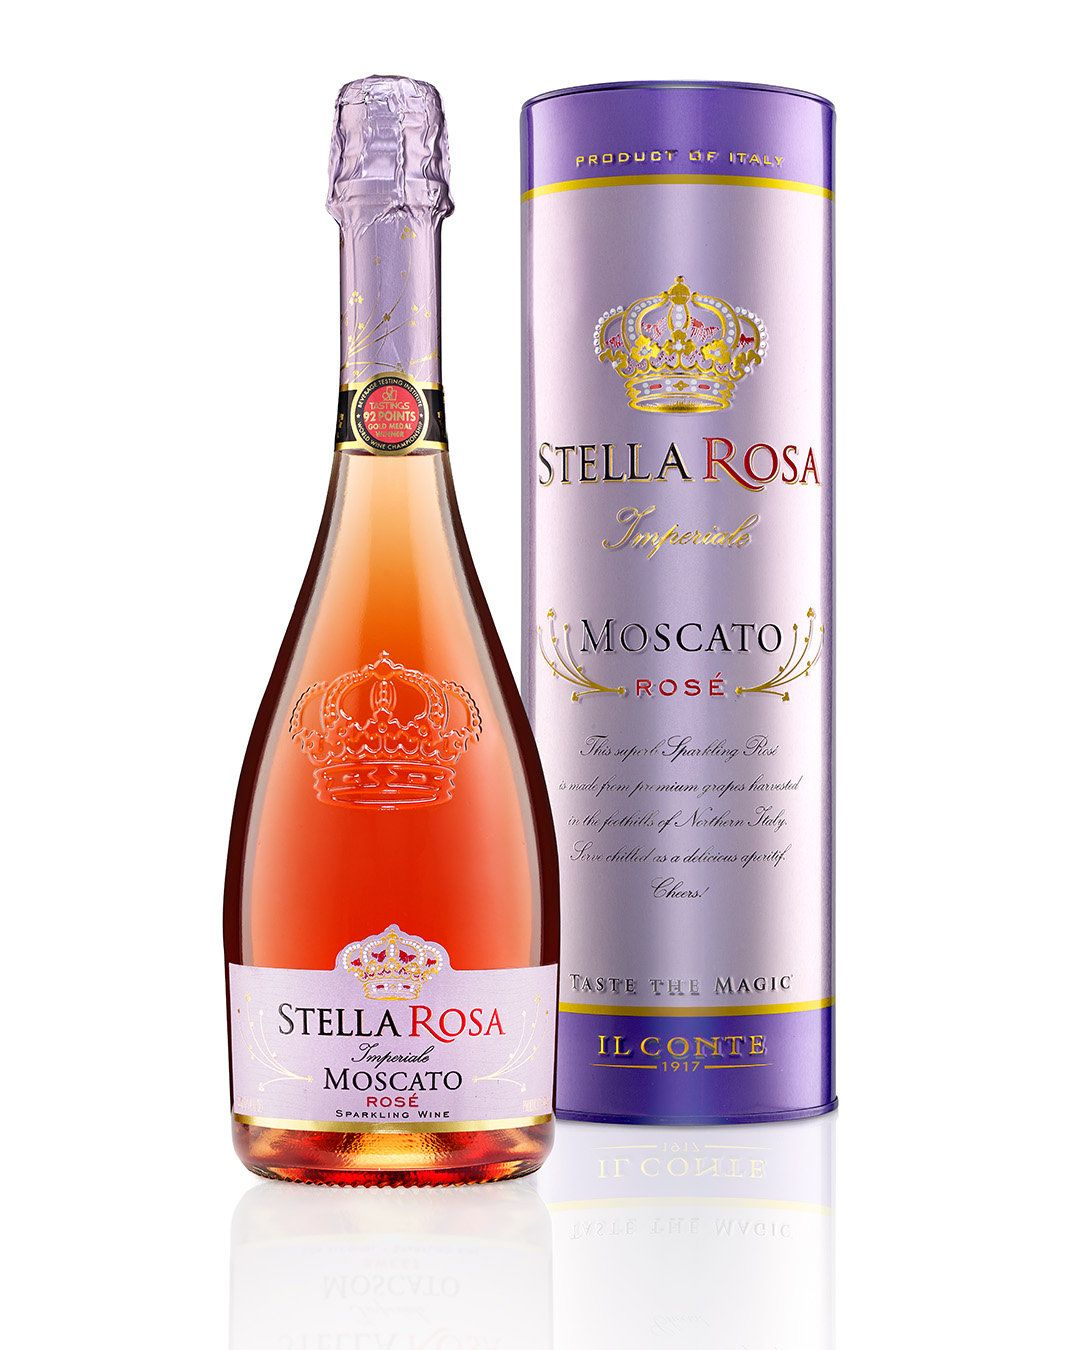 Stella Rosa Moscato Sparkling Wine Packaging Alcohol